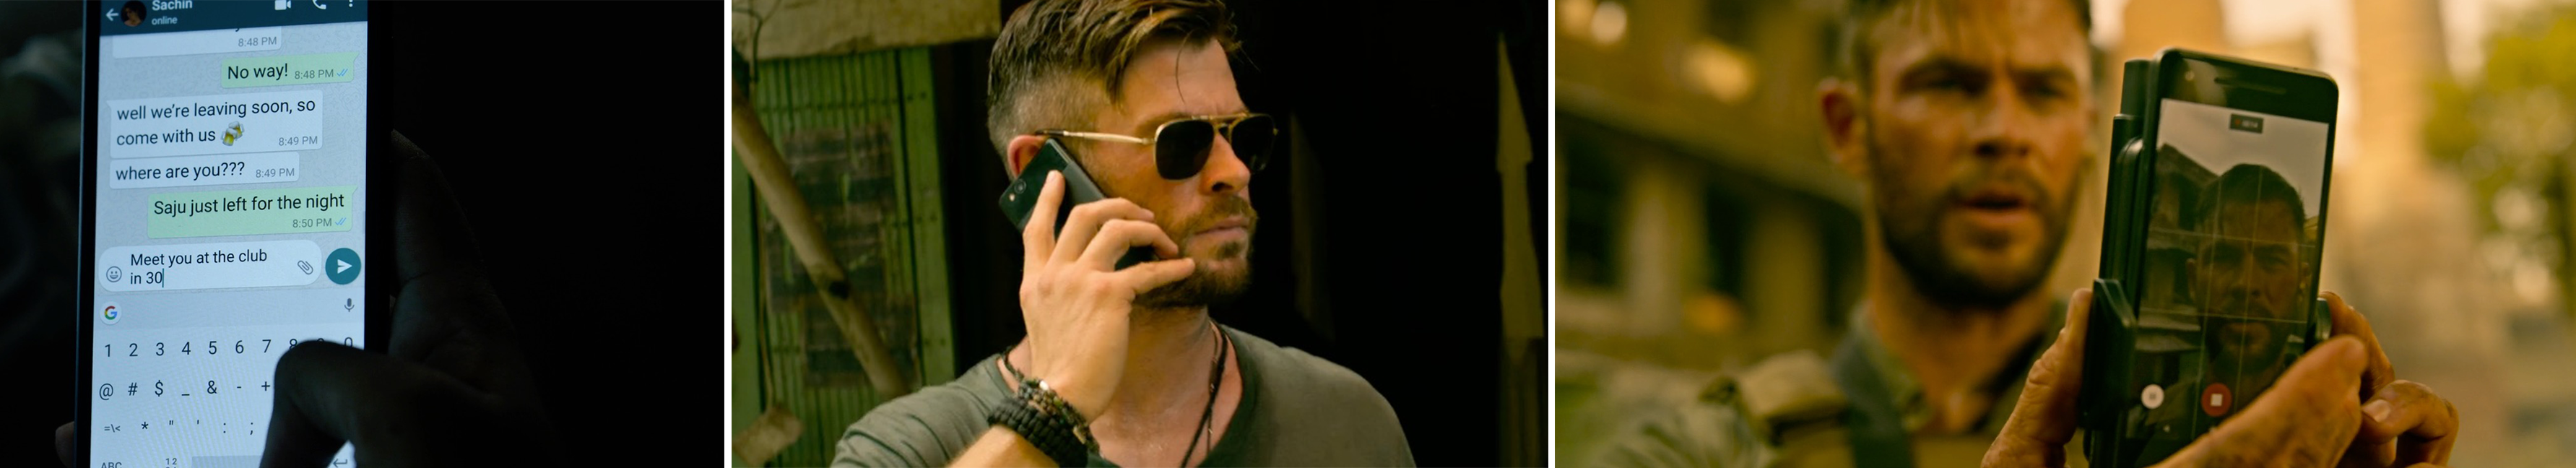 google pixel product placement mobile phone in EXTRACTION used by Chris Hemsworth